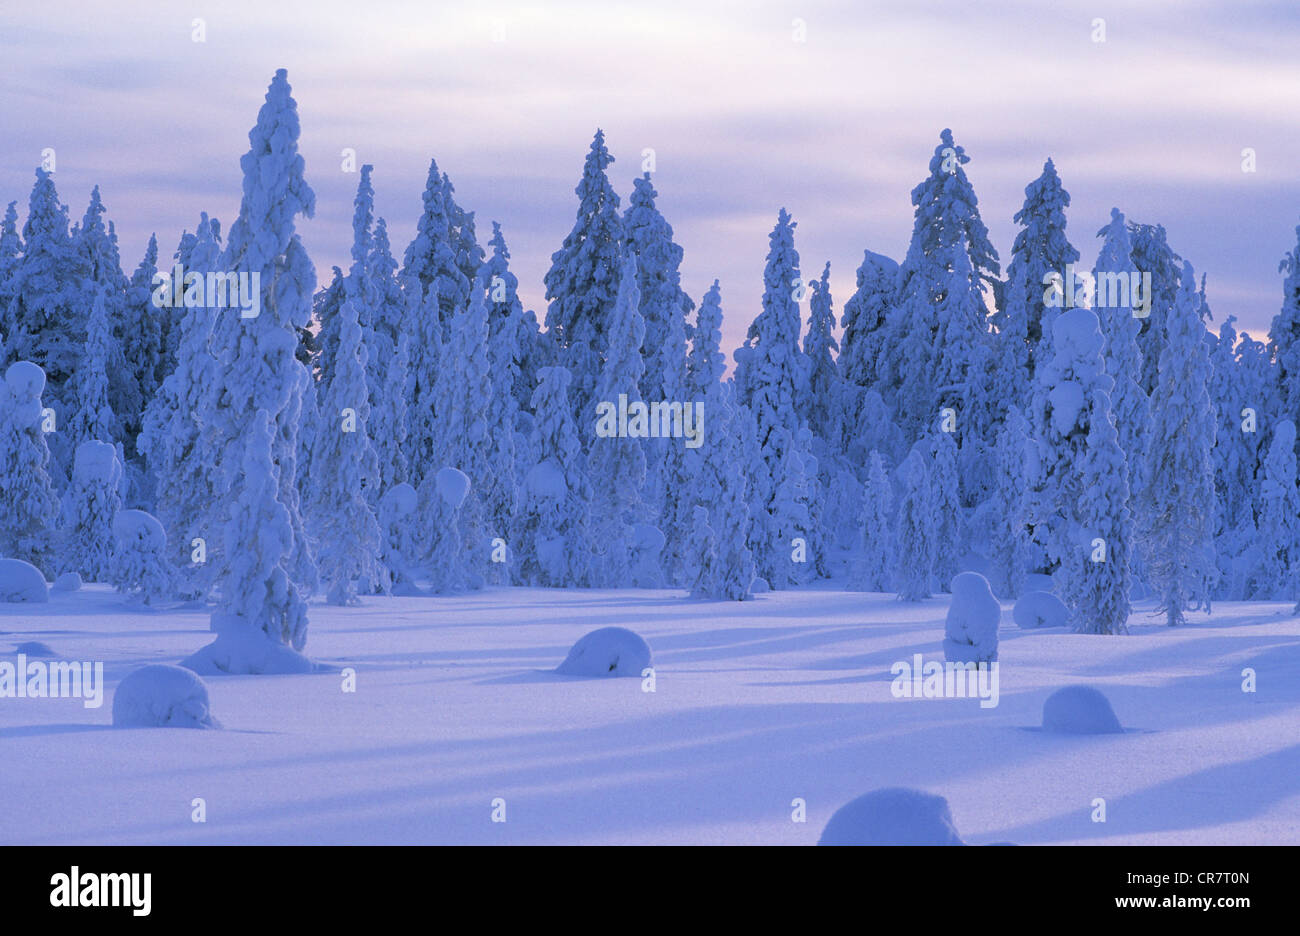 Finland, Lapland Province, Kuusamo, snowy landscape to the Russian border - Stock Image